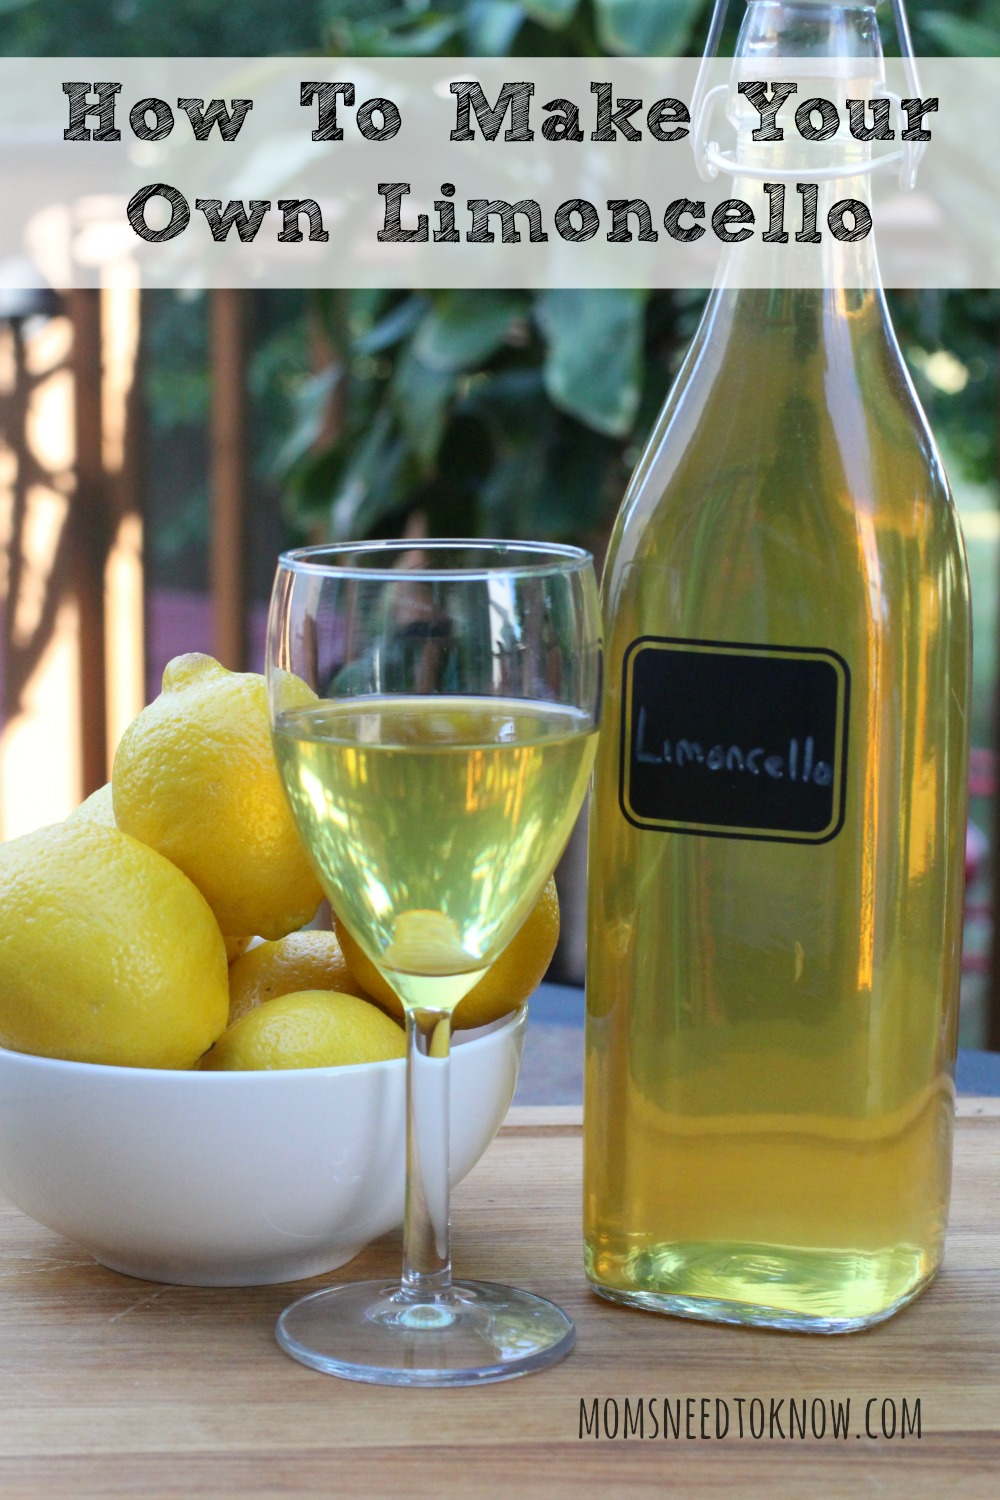 It is so easy to make limoncello at home that you will never buy it again. Sweet and lemony, it can be sipped, mixed in drinks or even used in desserts!